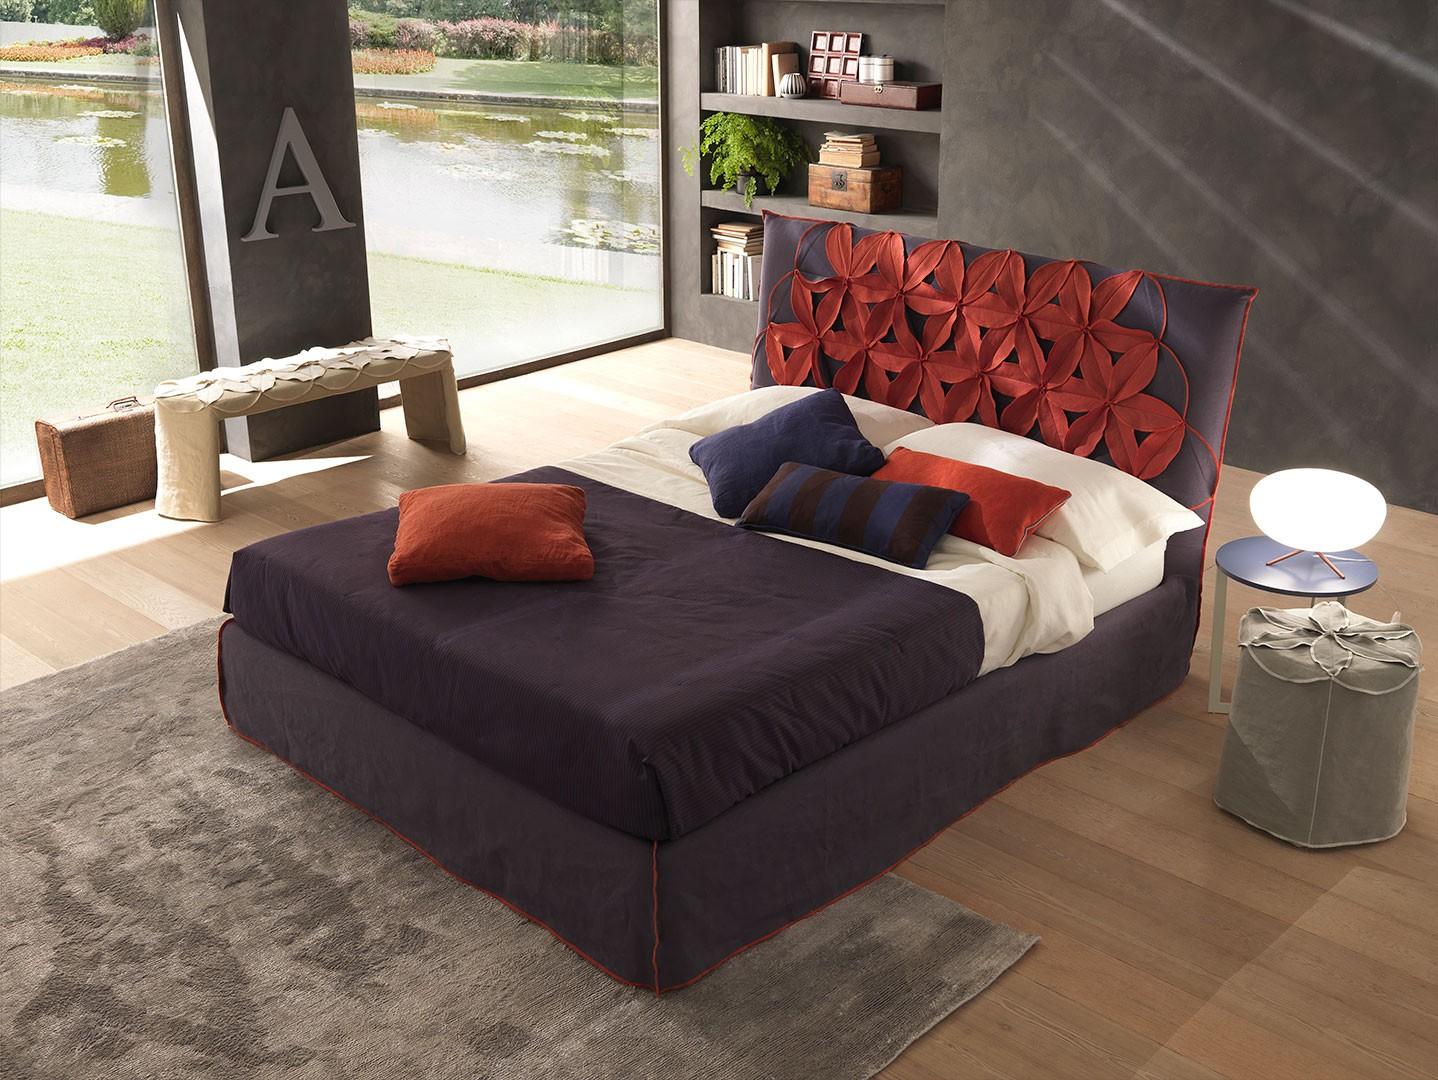 BEAUTIFUL BIG CHIC & BEAUTIFUL BIG CHIC - BEDS - BEDROOMS - PRODUCTS